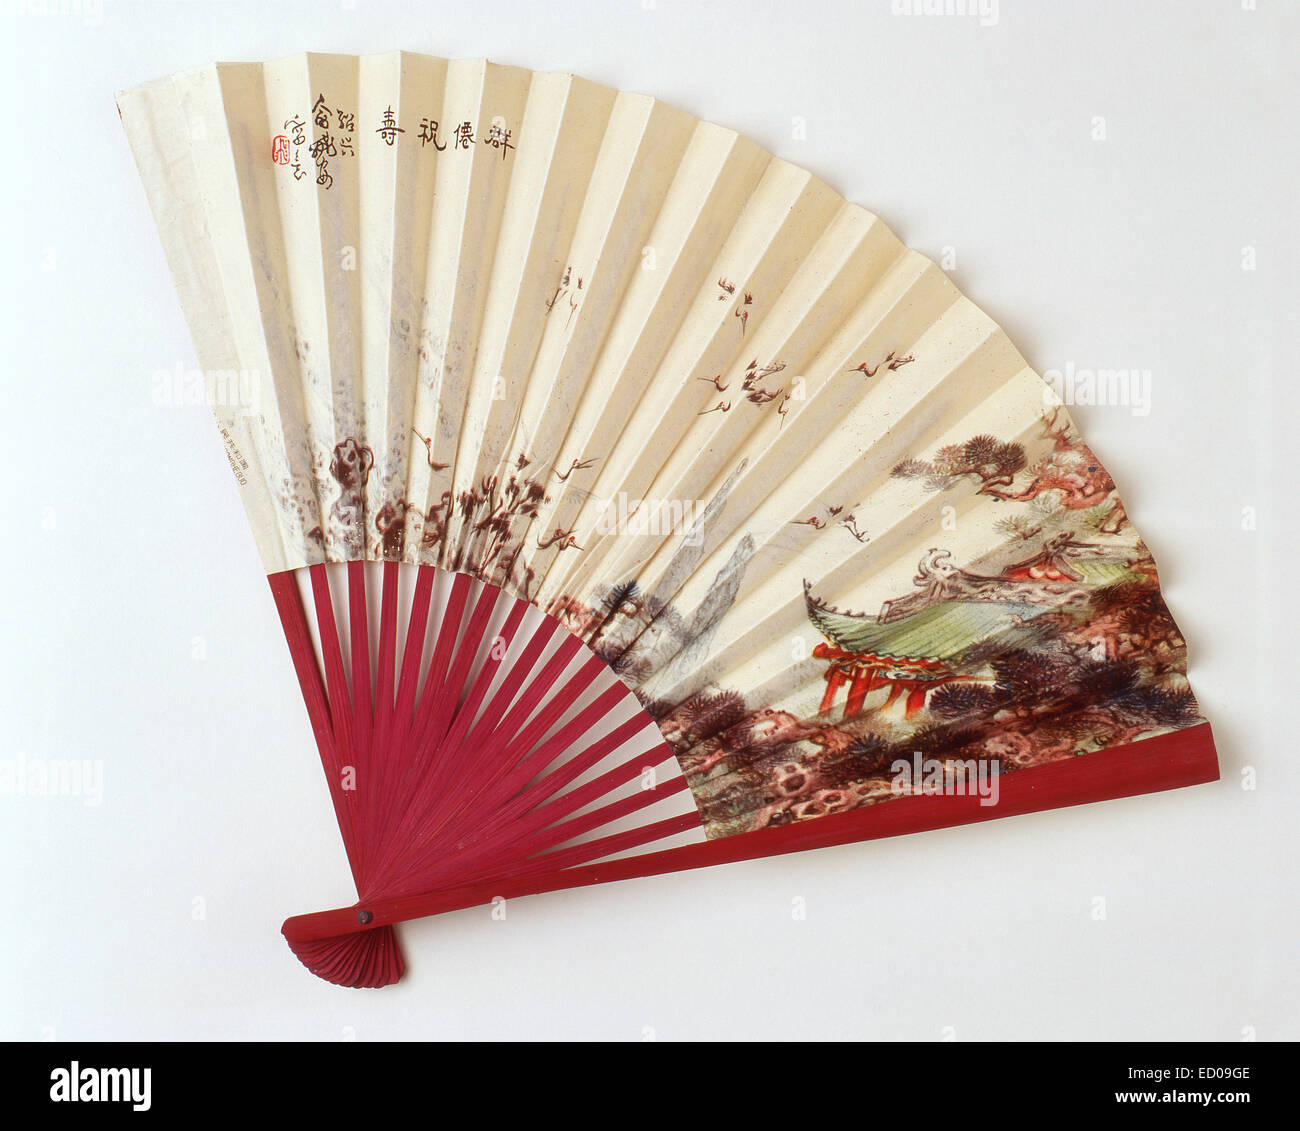 Chinese painted fan, Shanghai, People's Republic of China - Stock Image